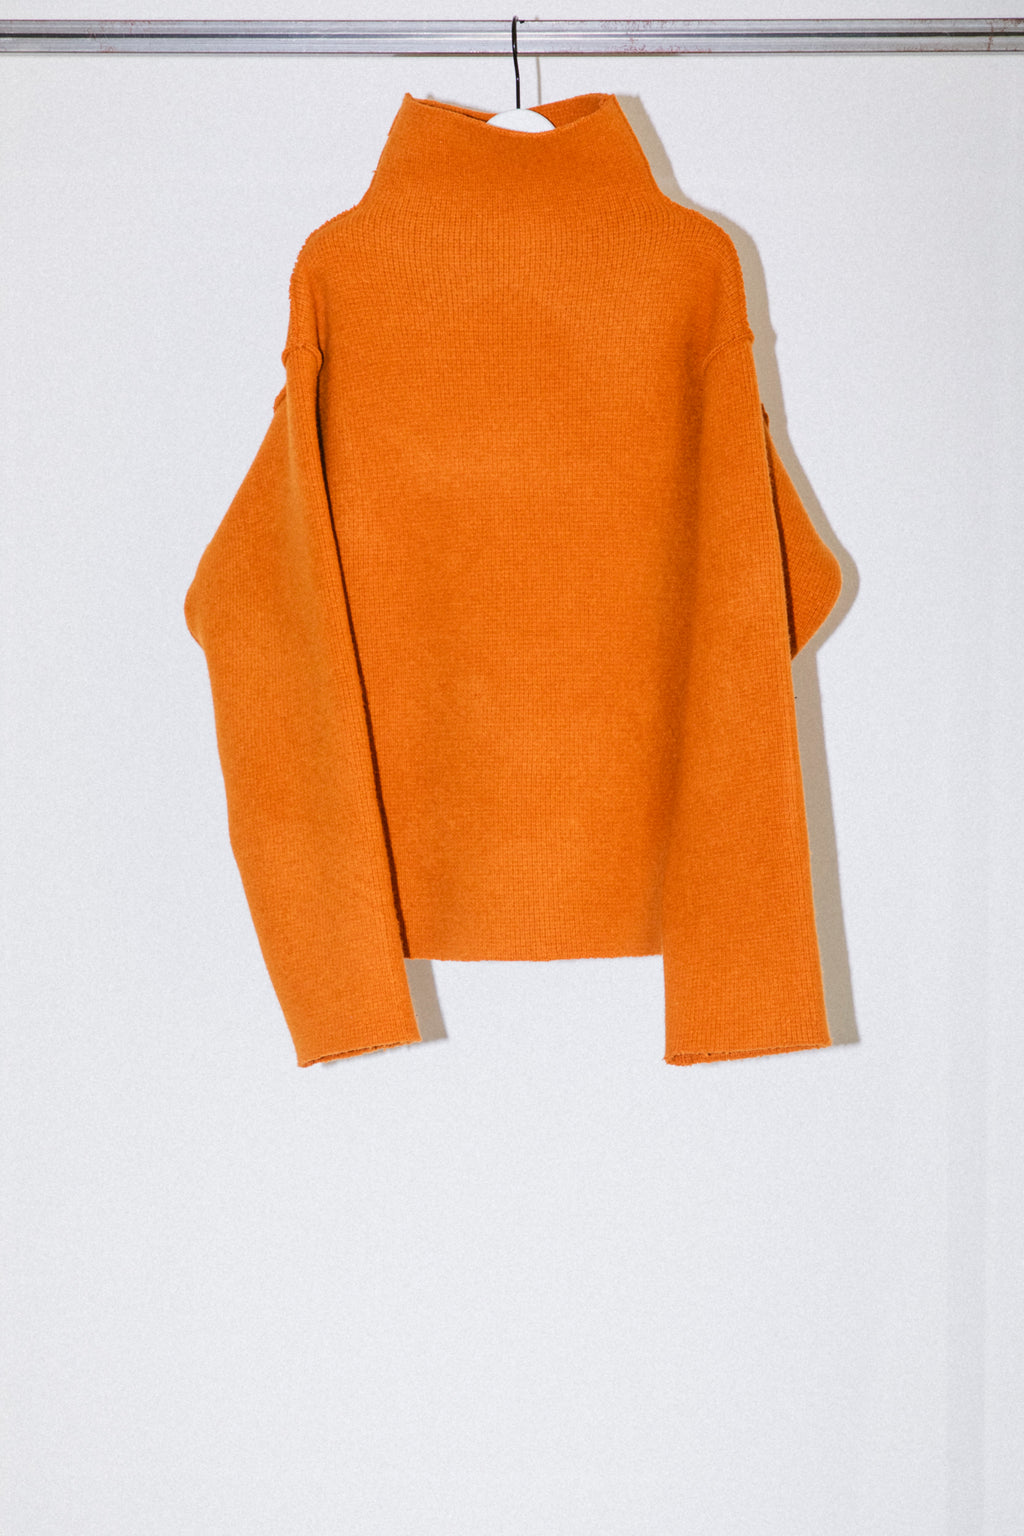 #266 COMPRESSED VOLUME SWEATER